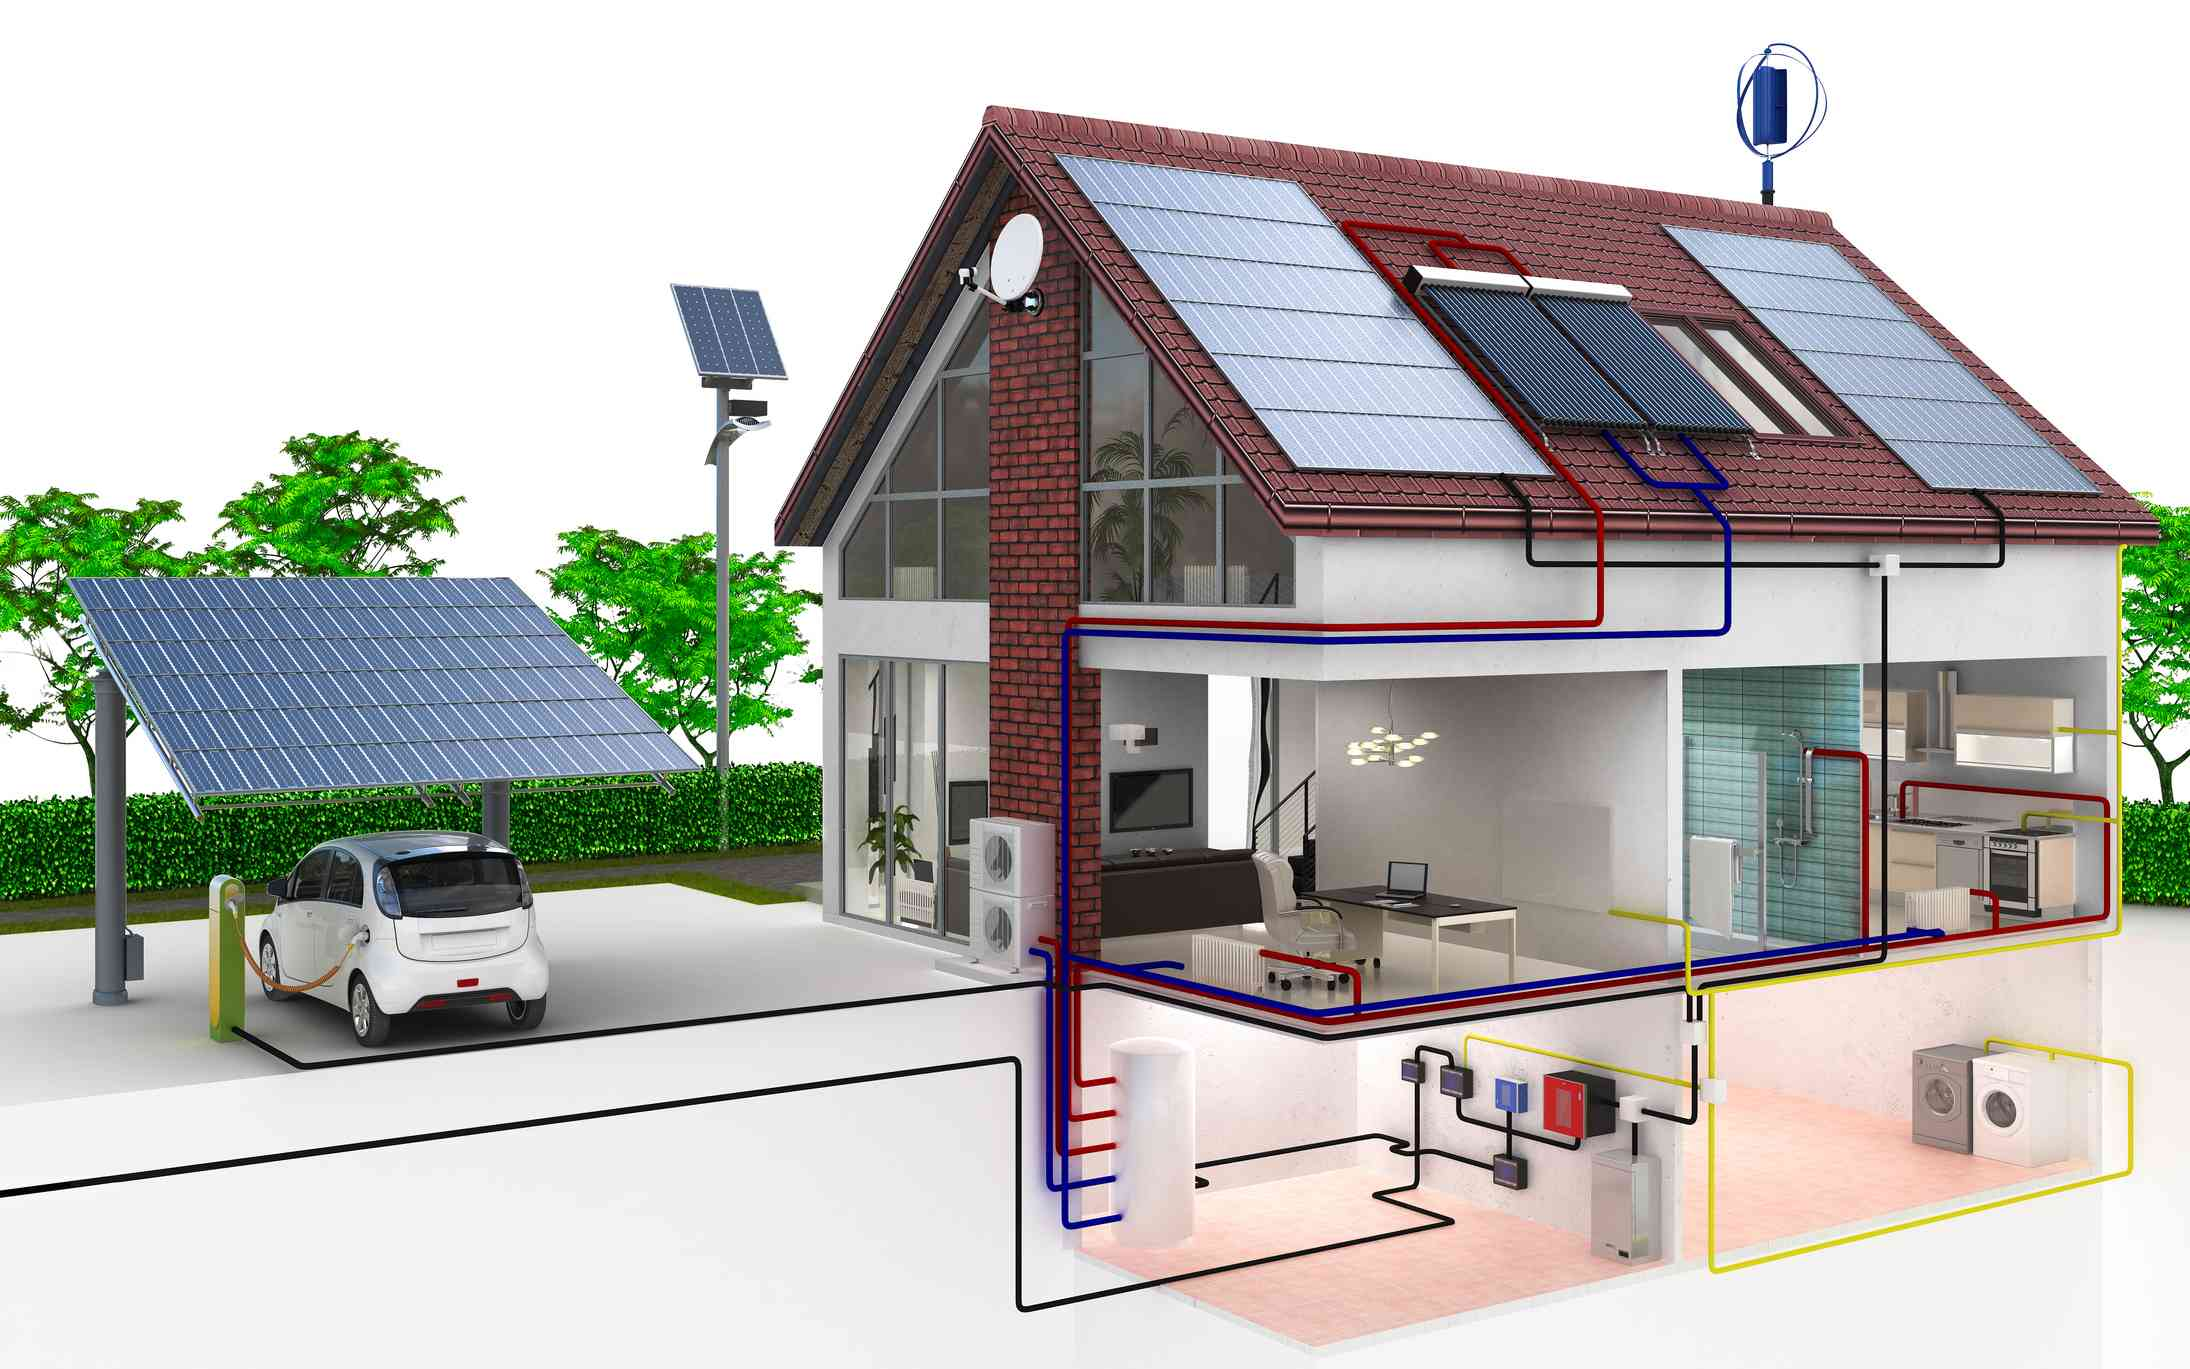 Solar-Plus-Storage fueling an electric vehicle.